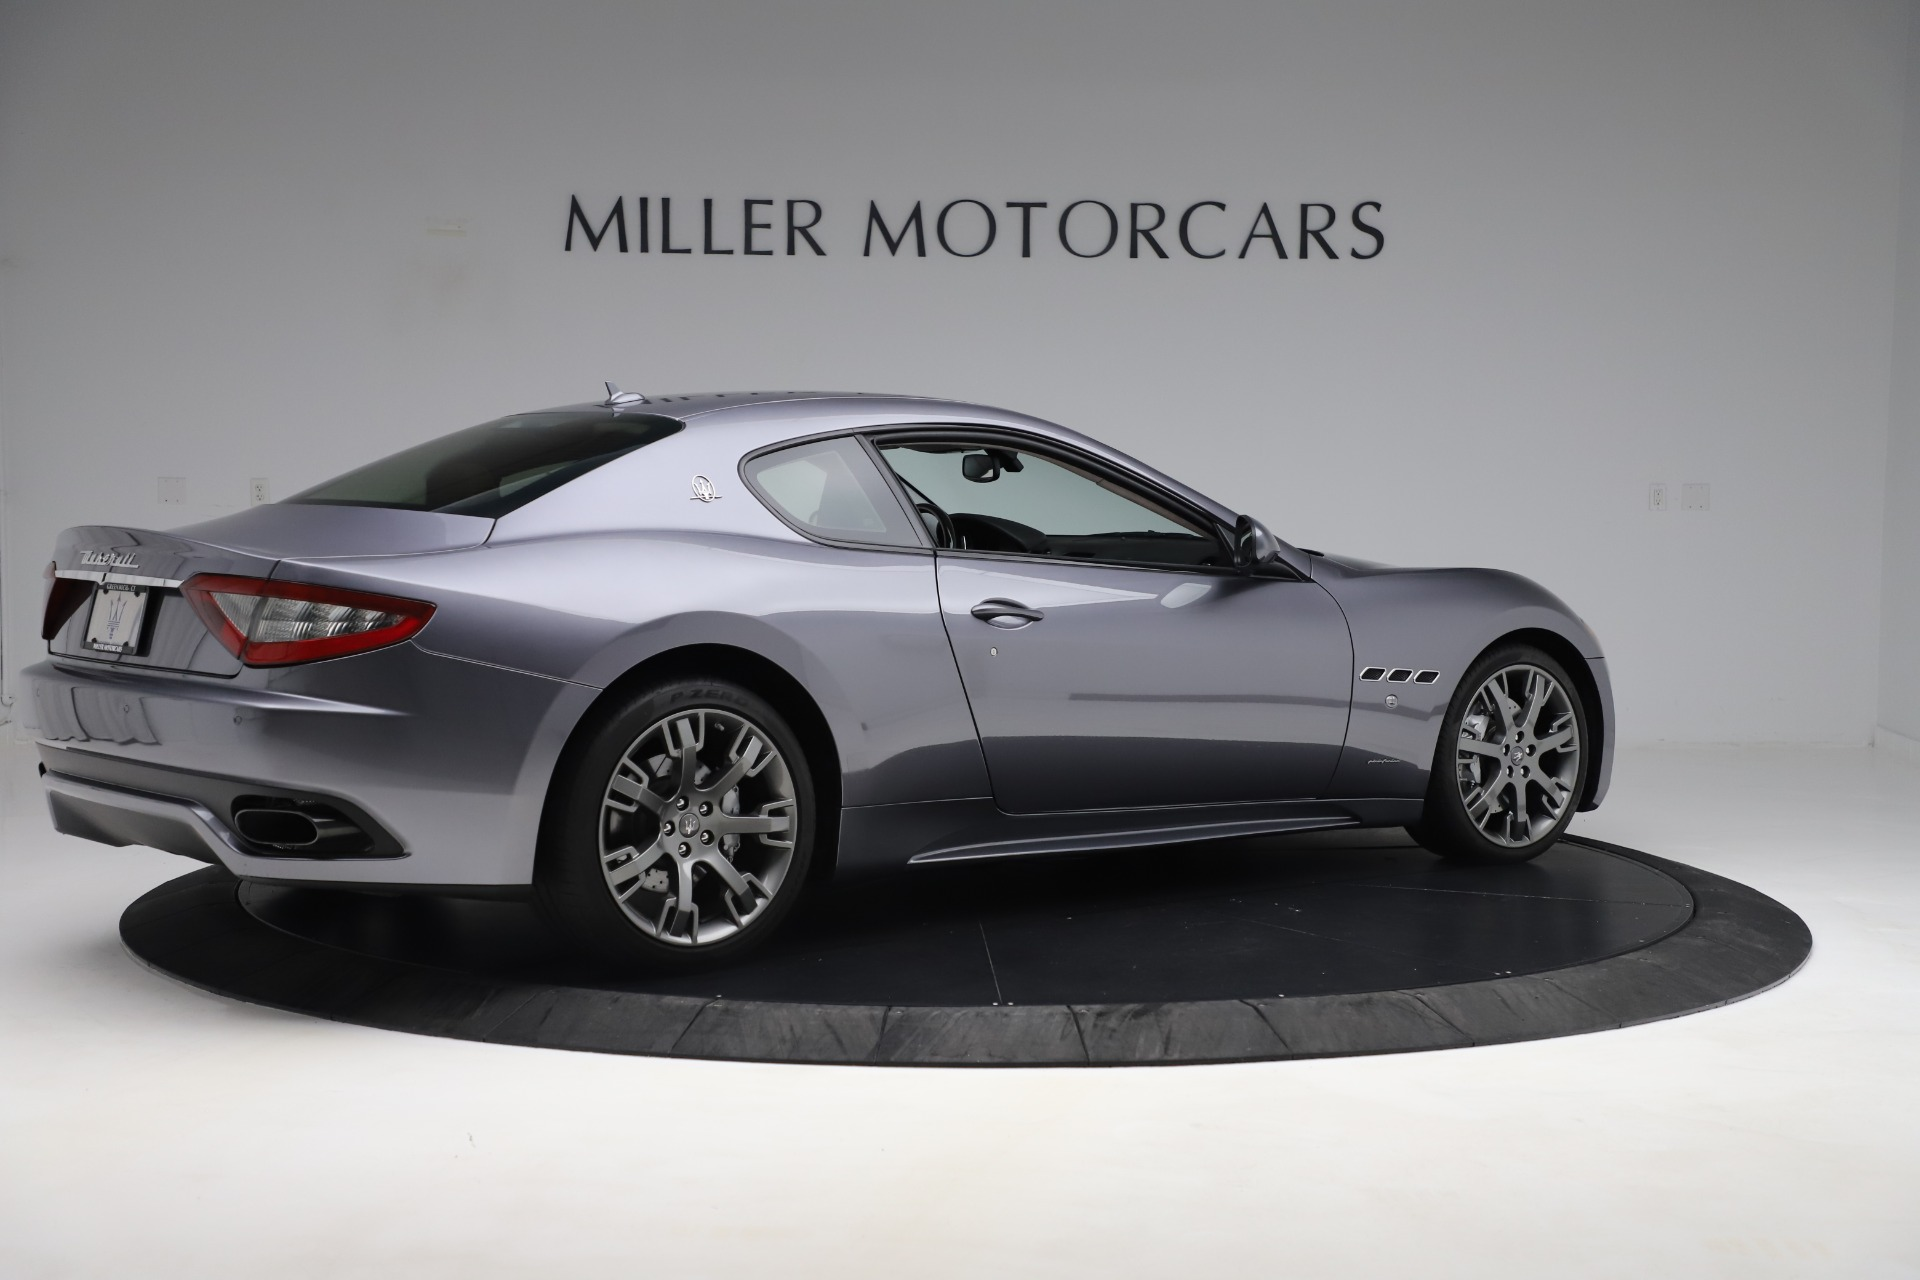 New 2016 Maserati GranTurismo Sport- TEST DRIVE SPECIAL For Sale In Greenwich, CT 166_p8